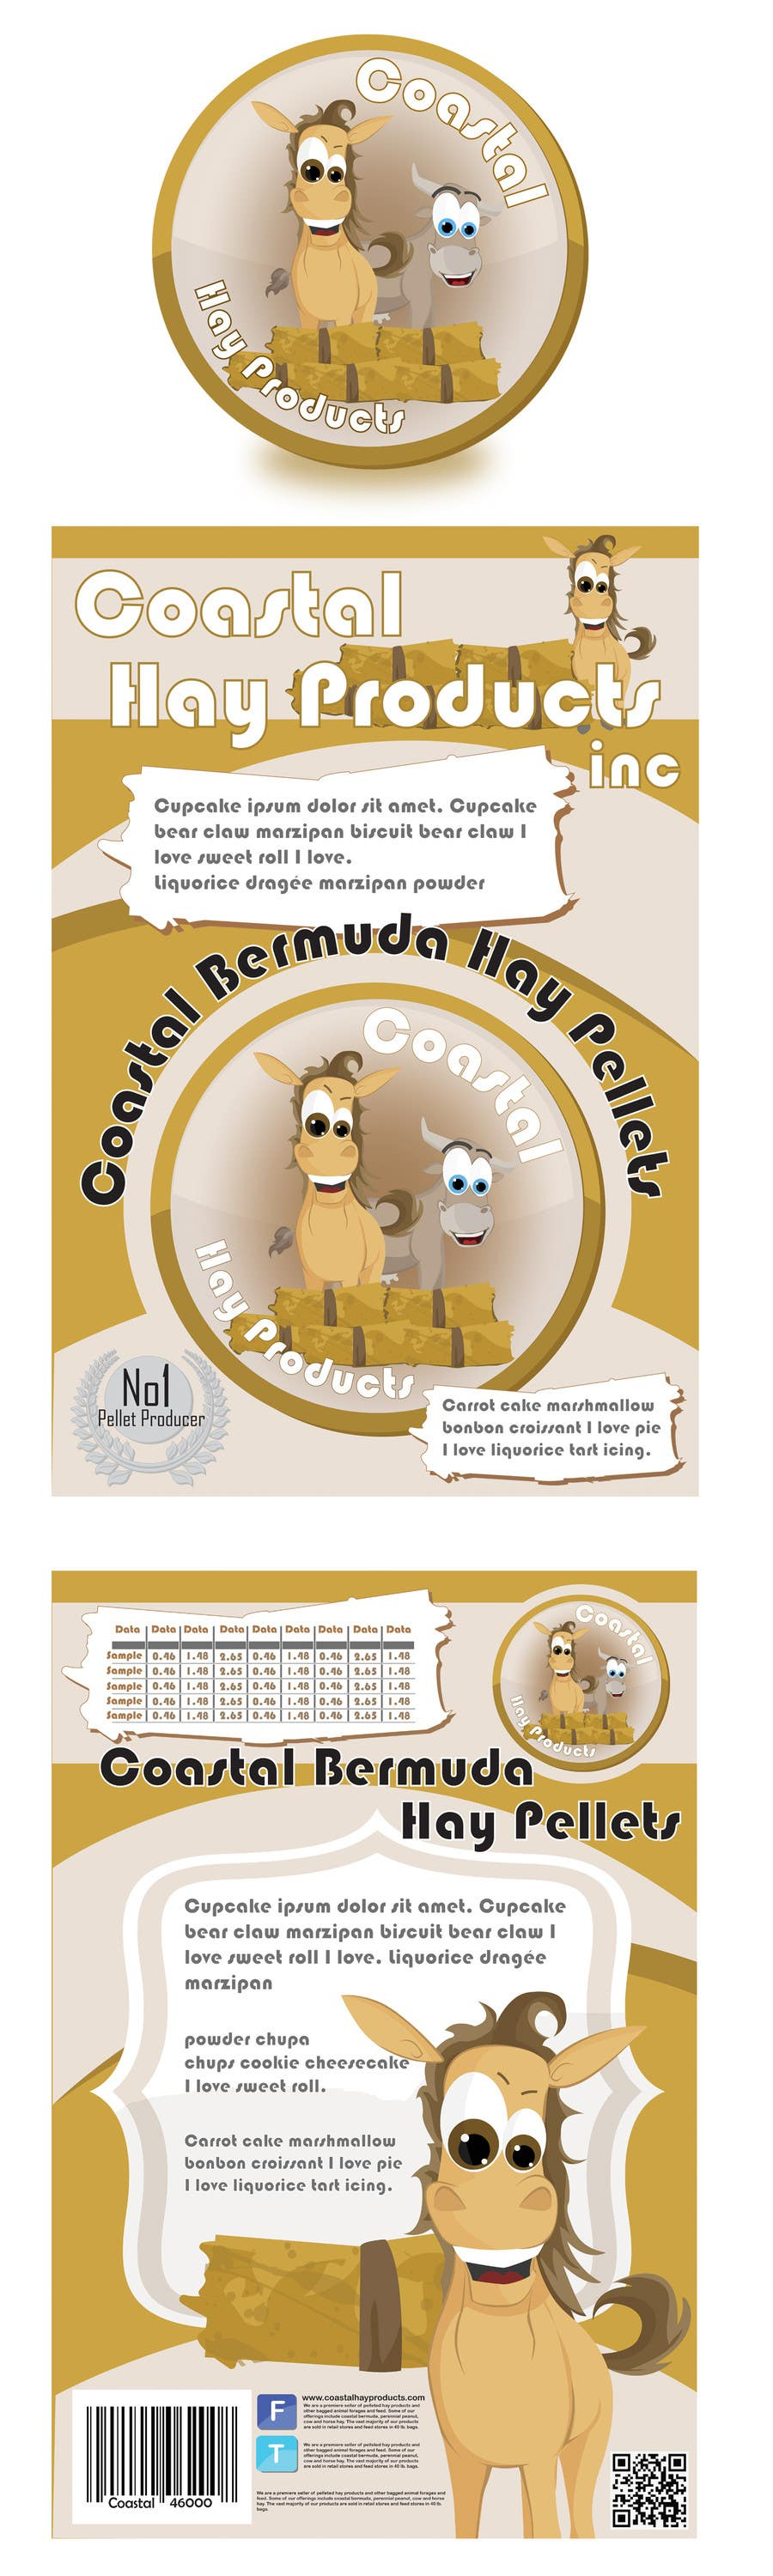 Inscrição nº                                         15                                      do Concurso para                                         Print & Packaging Design for Coastal Hay Products, Inc.